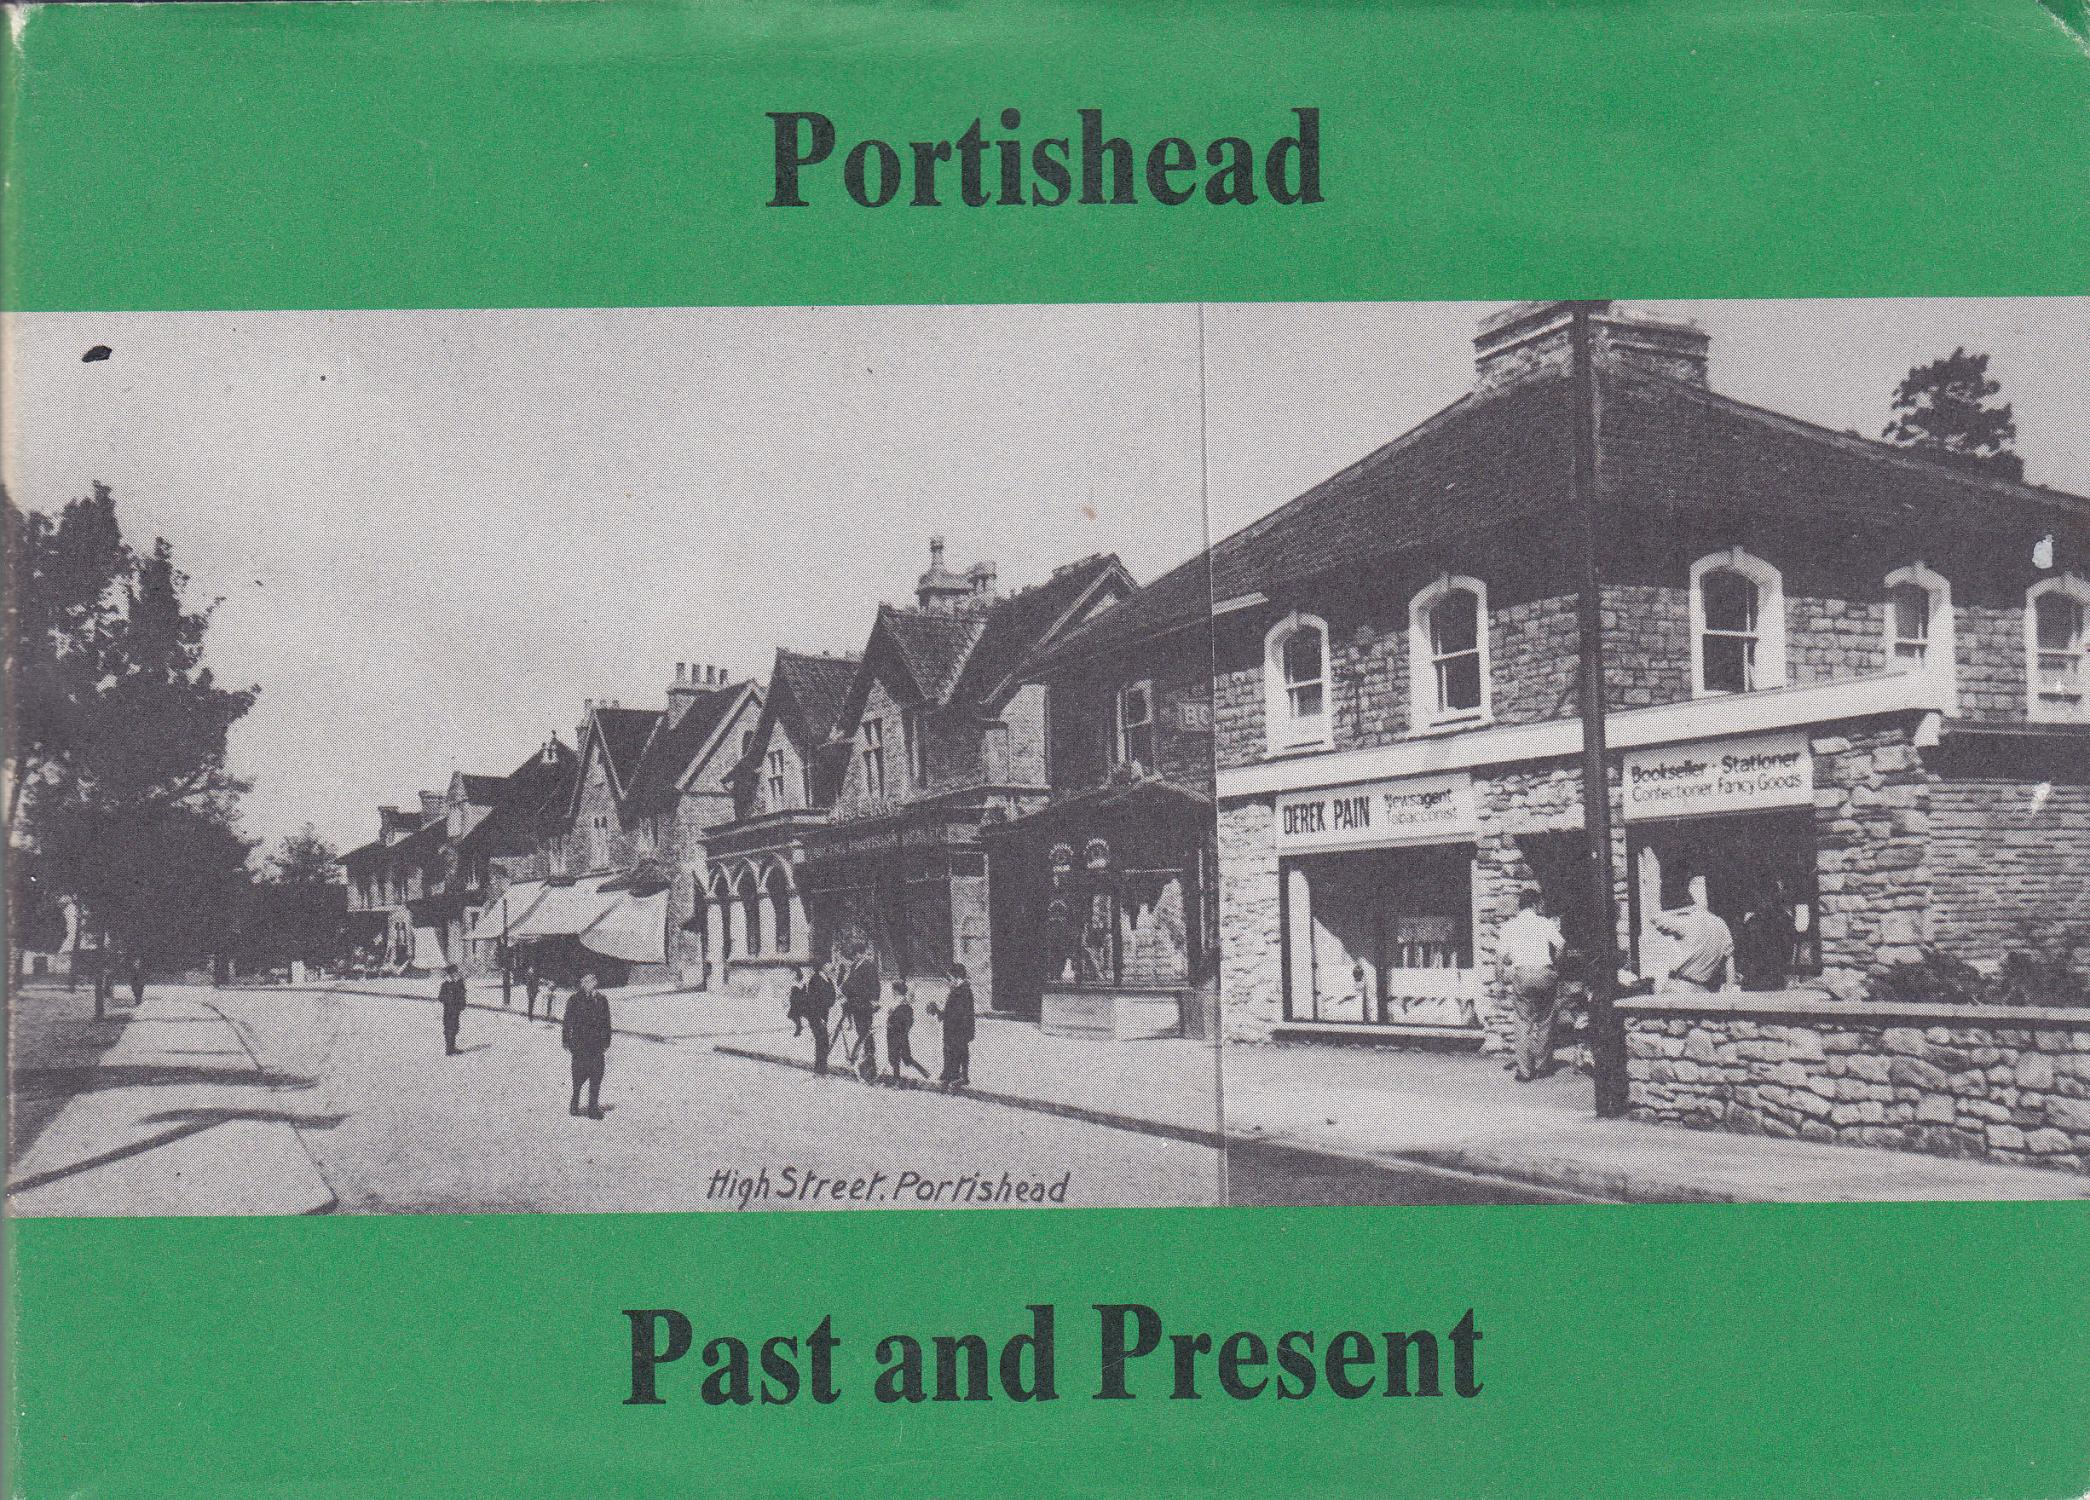 Portishead Past and Present